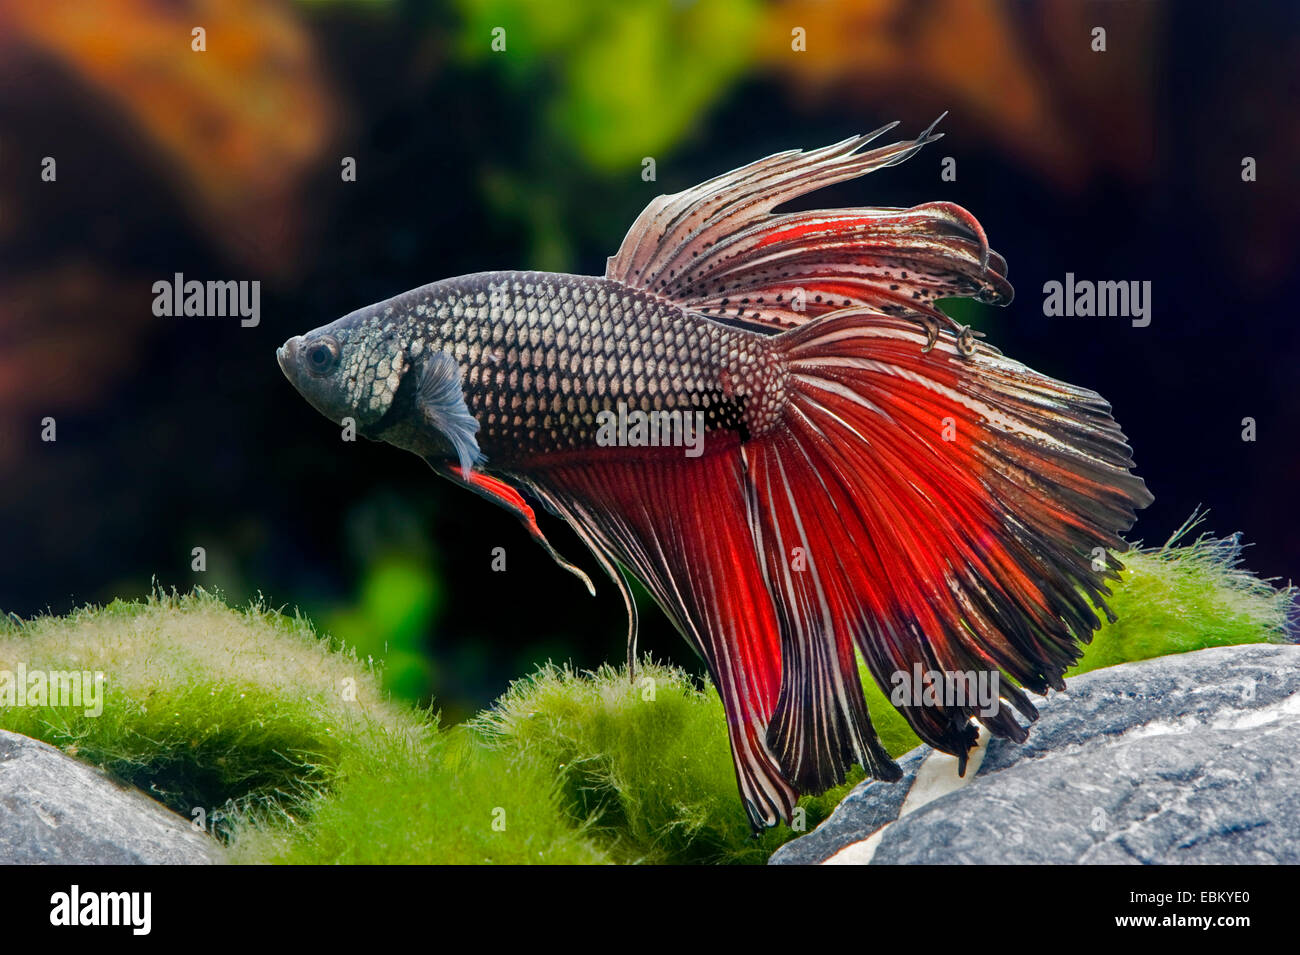 Betta Male Stock Photos & Betta Male Stock Images - Alamy